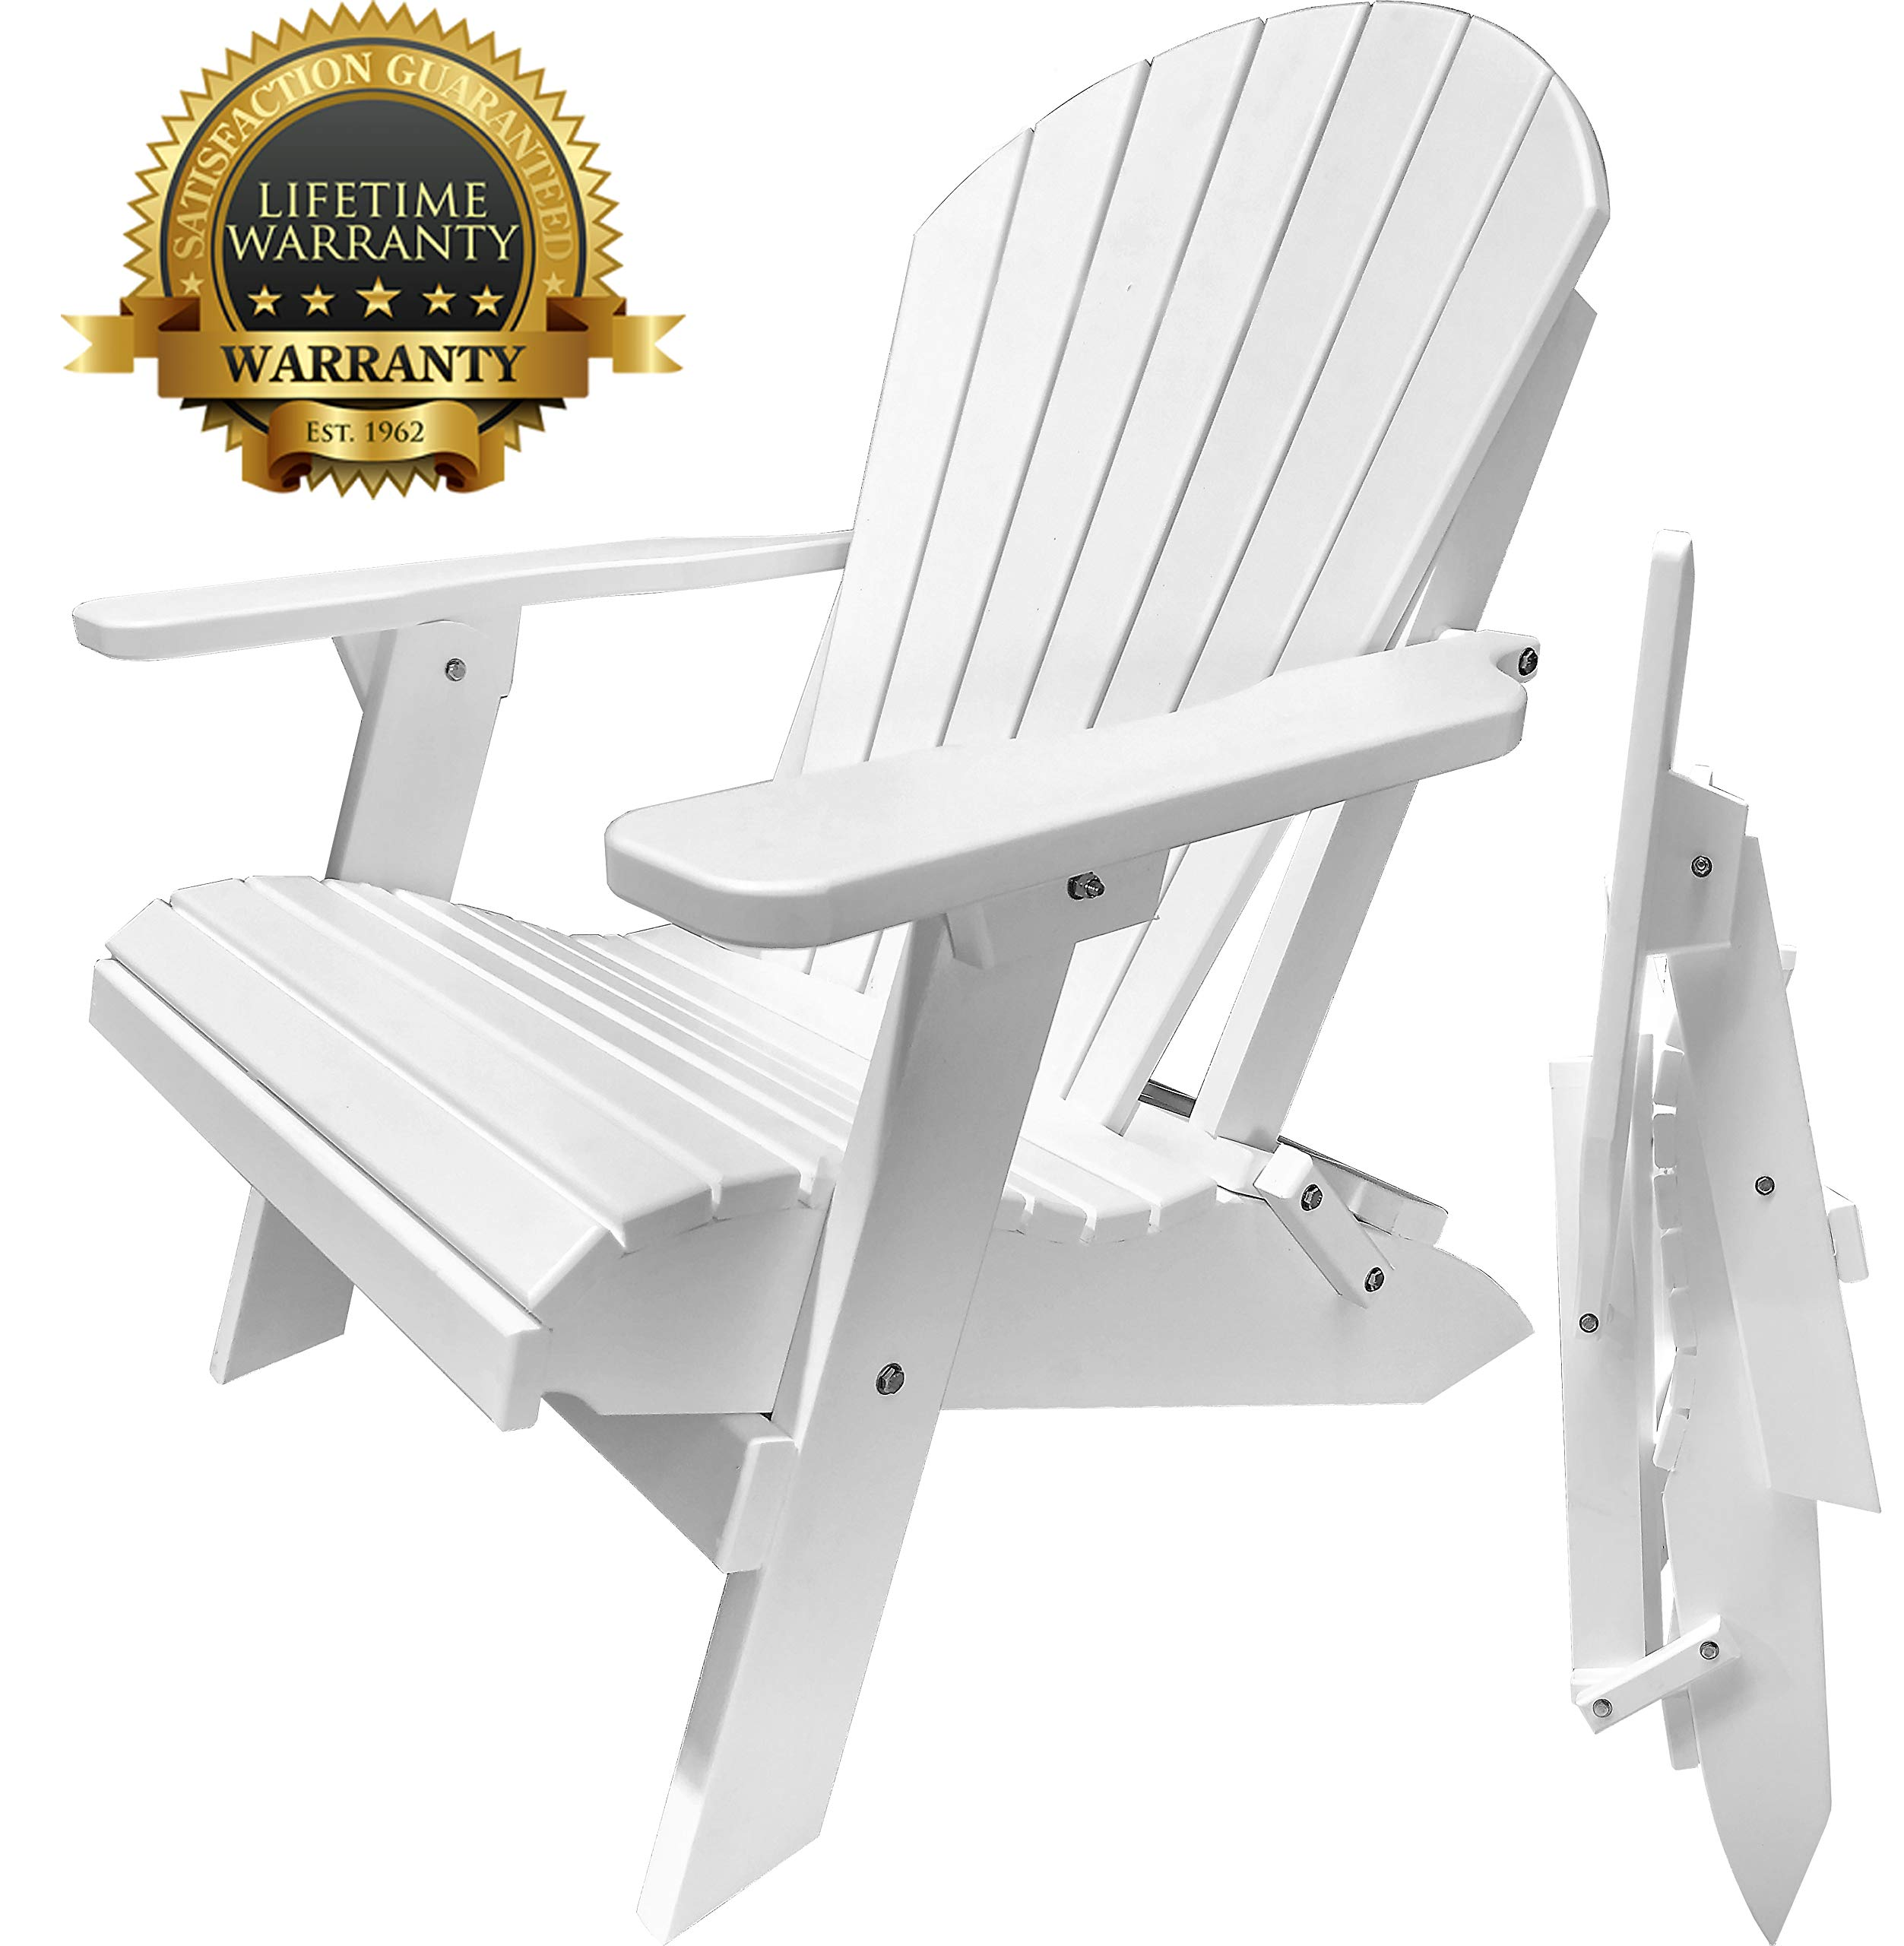 DuraWeather Classic Folding Adirondack Chair - Superior Composite Poly Resin - Made In USA - King Size - Made In The U.S.A. (Bright White)